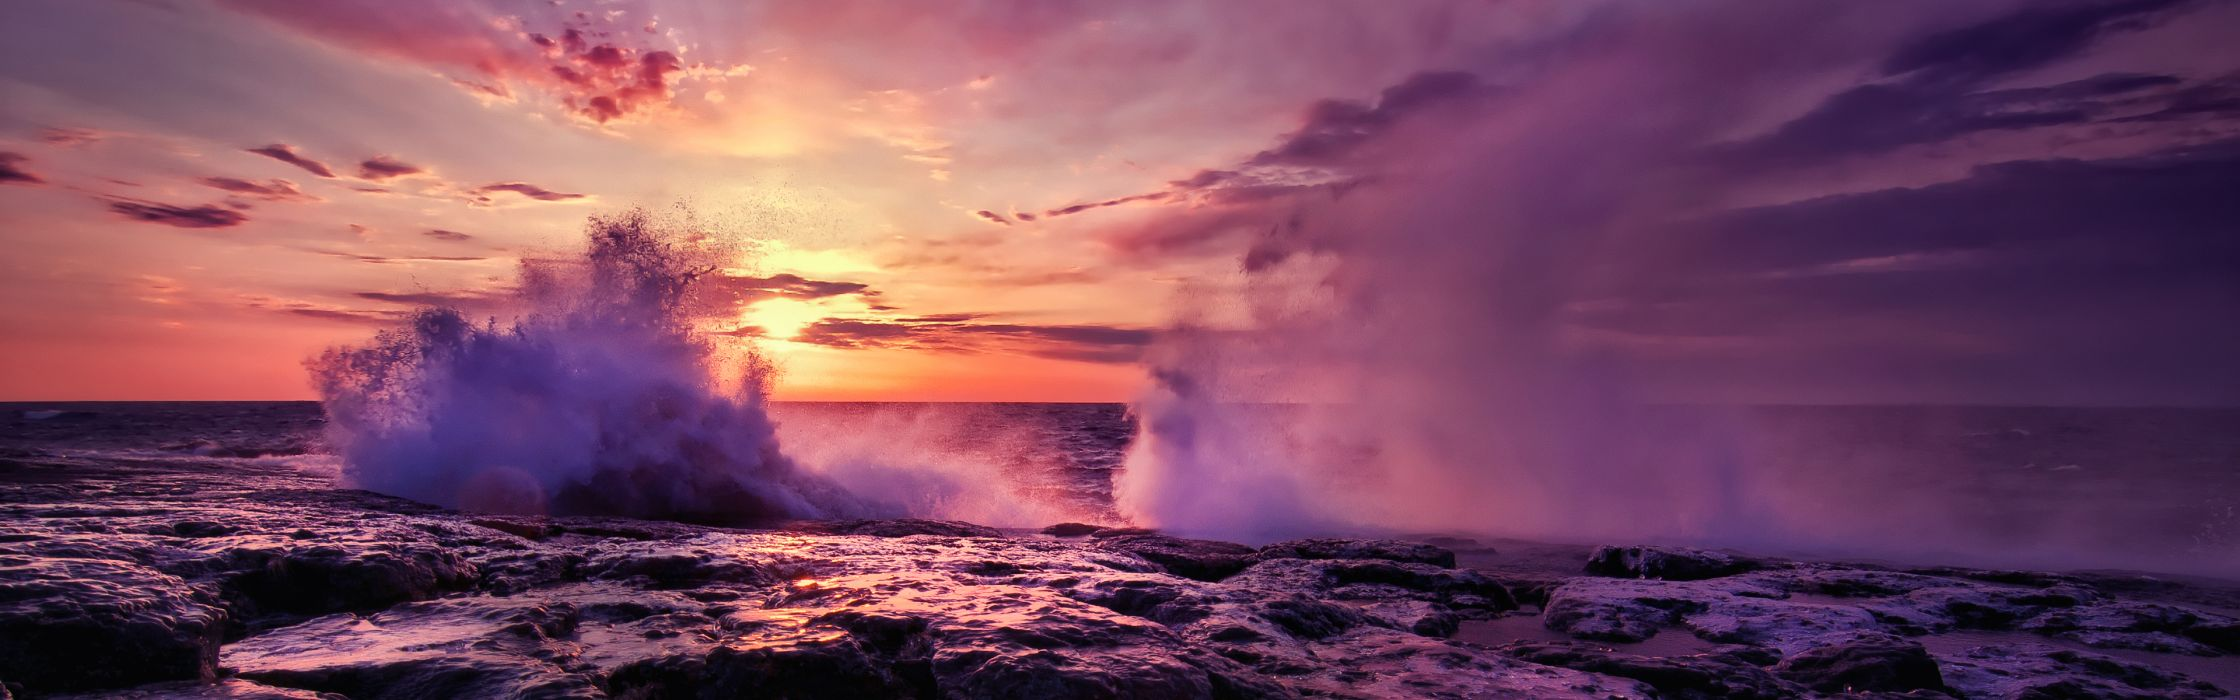 Water ocean clouds nature sun waves dusk multiscreen skyscapes wallpaper